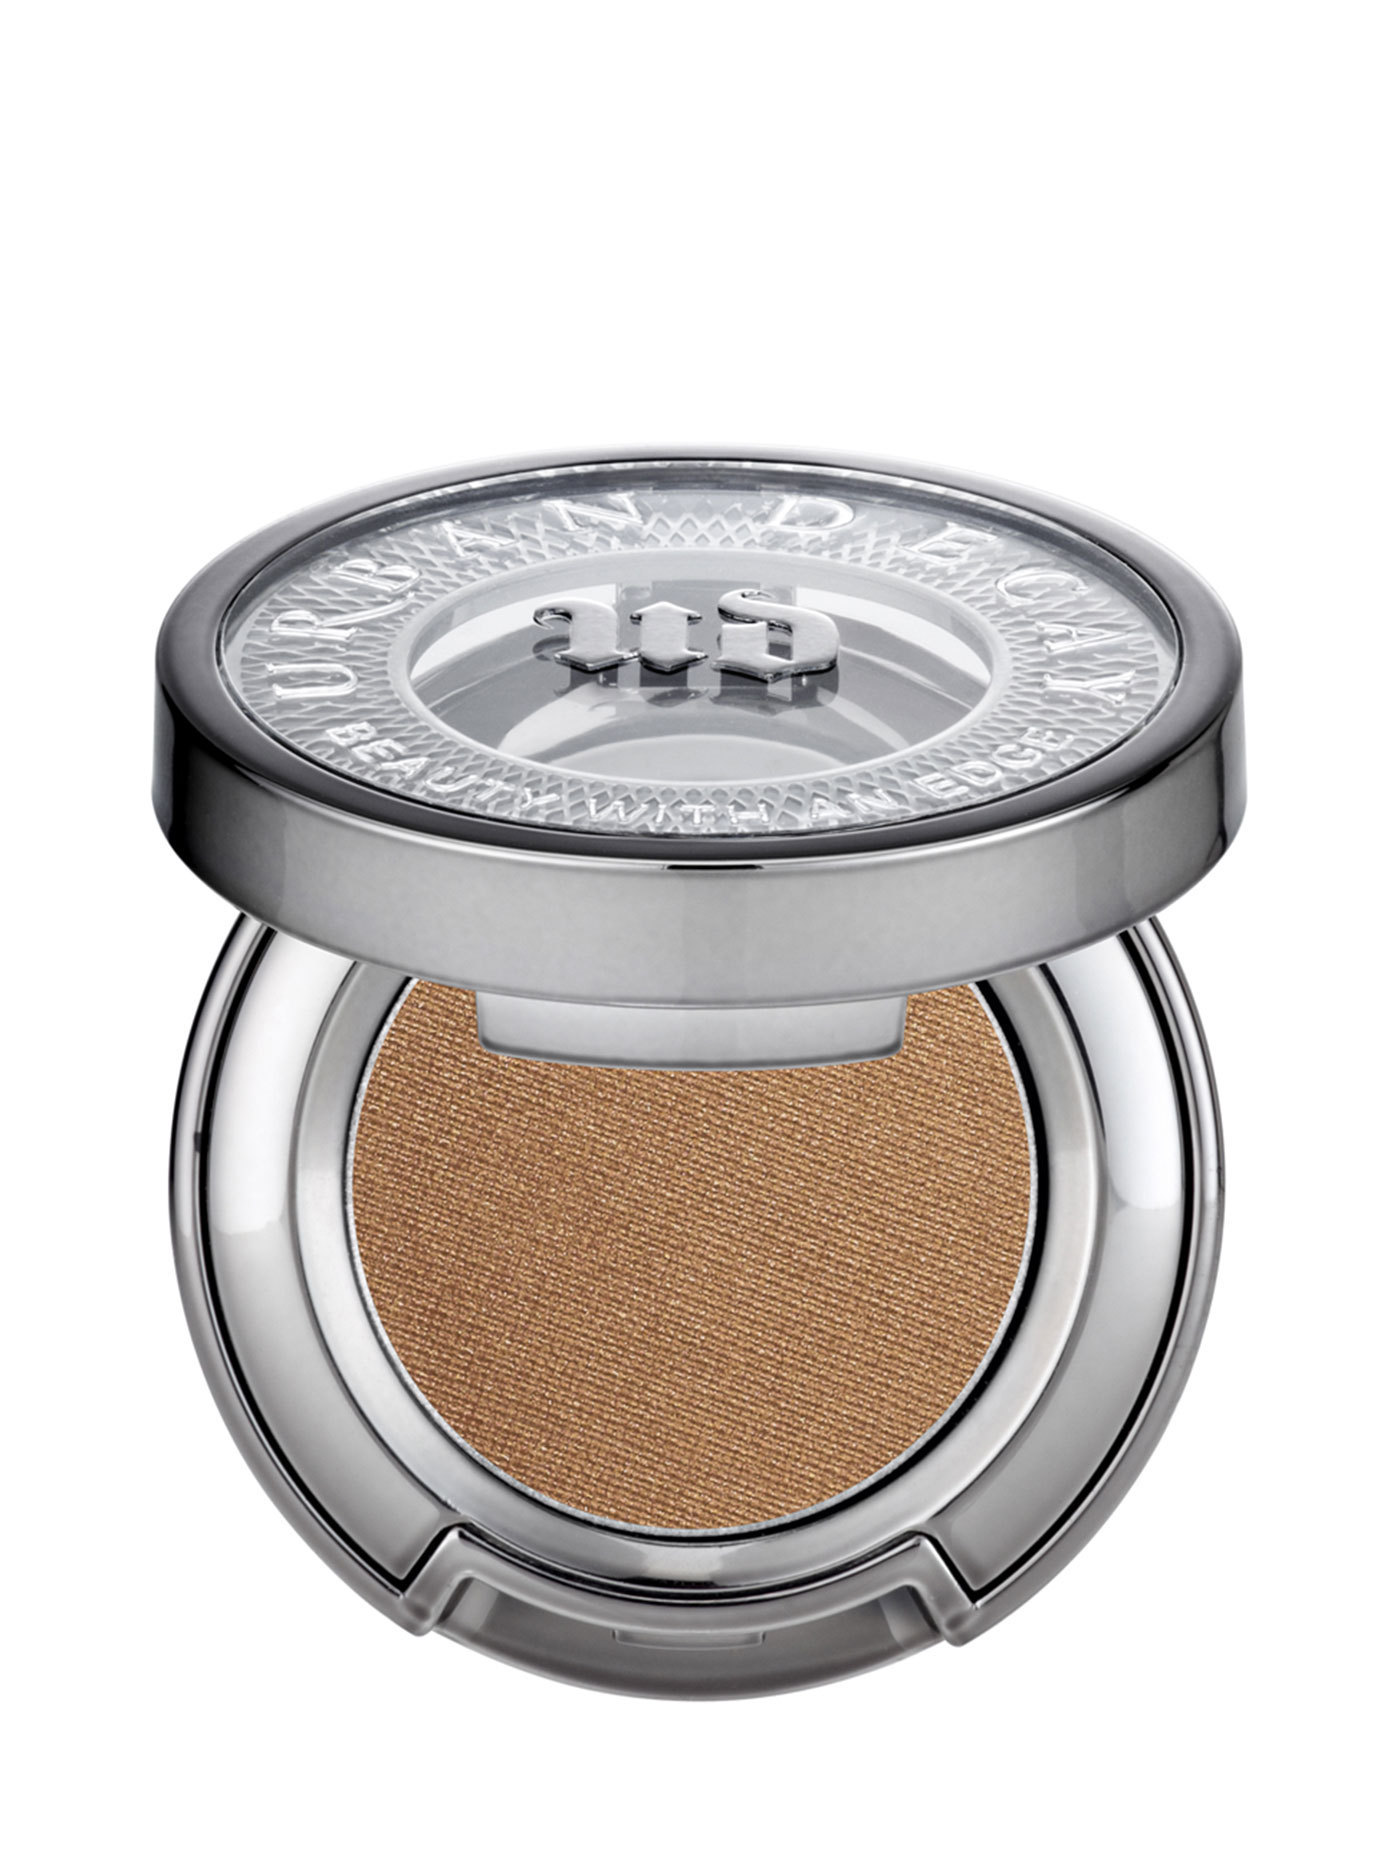 URBAN DECAY Eye Shadow #Baked (Rich bronze) 送料無料 追跡有